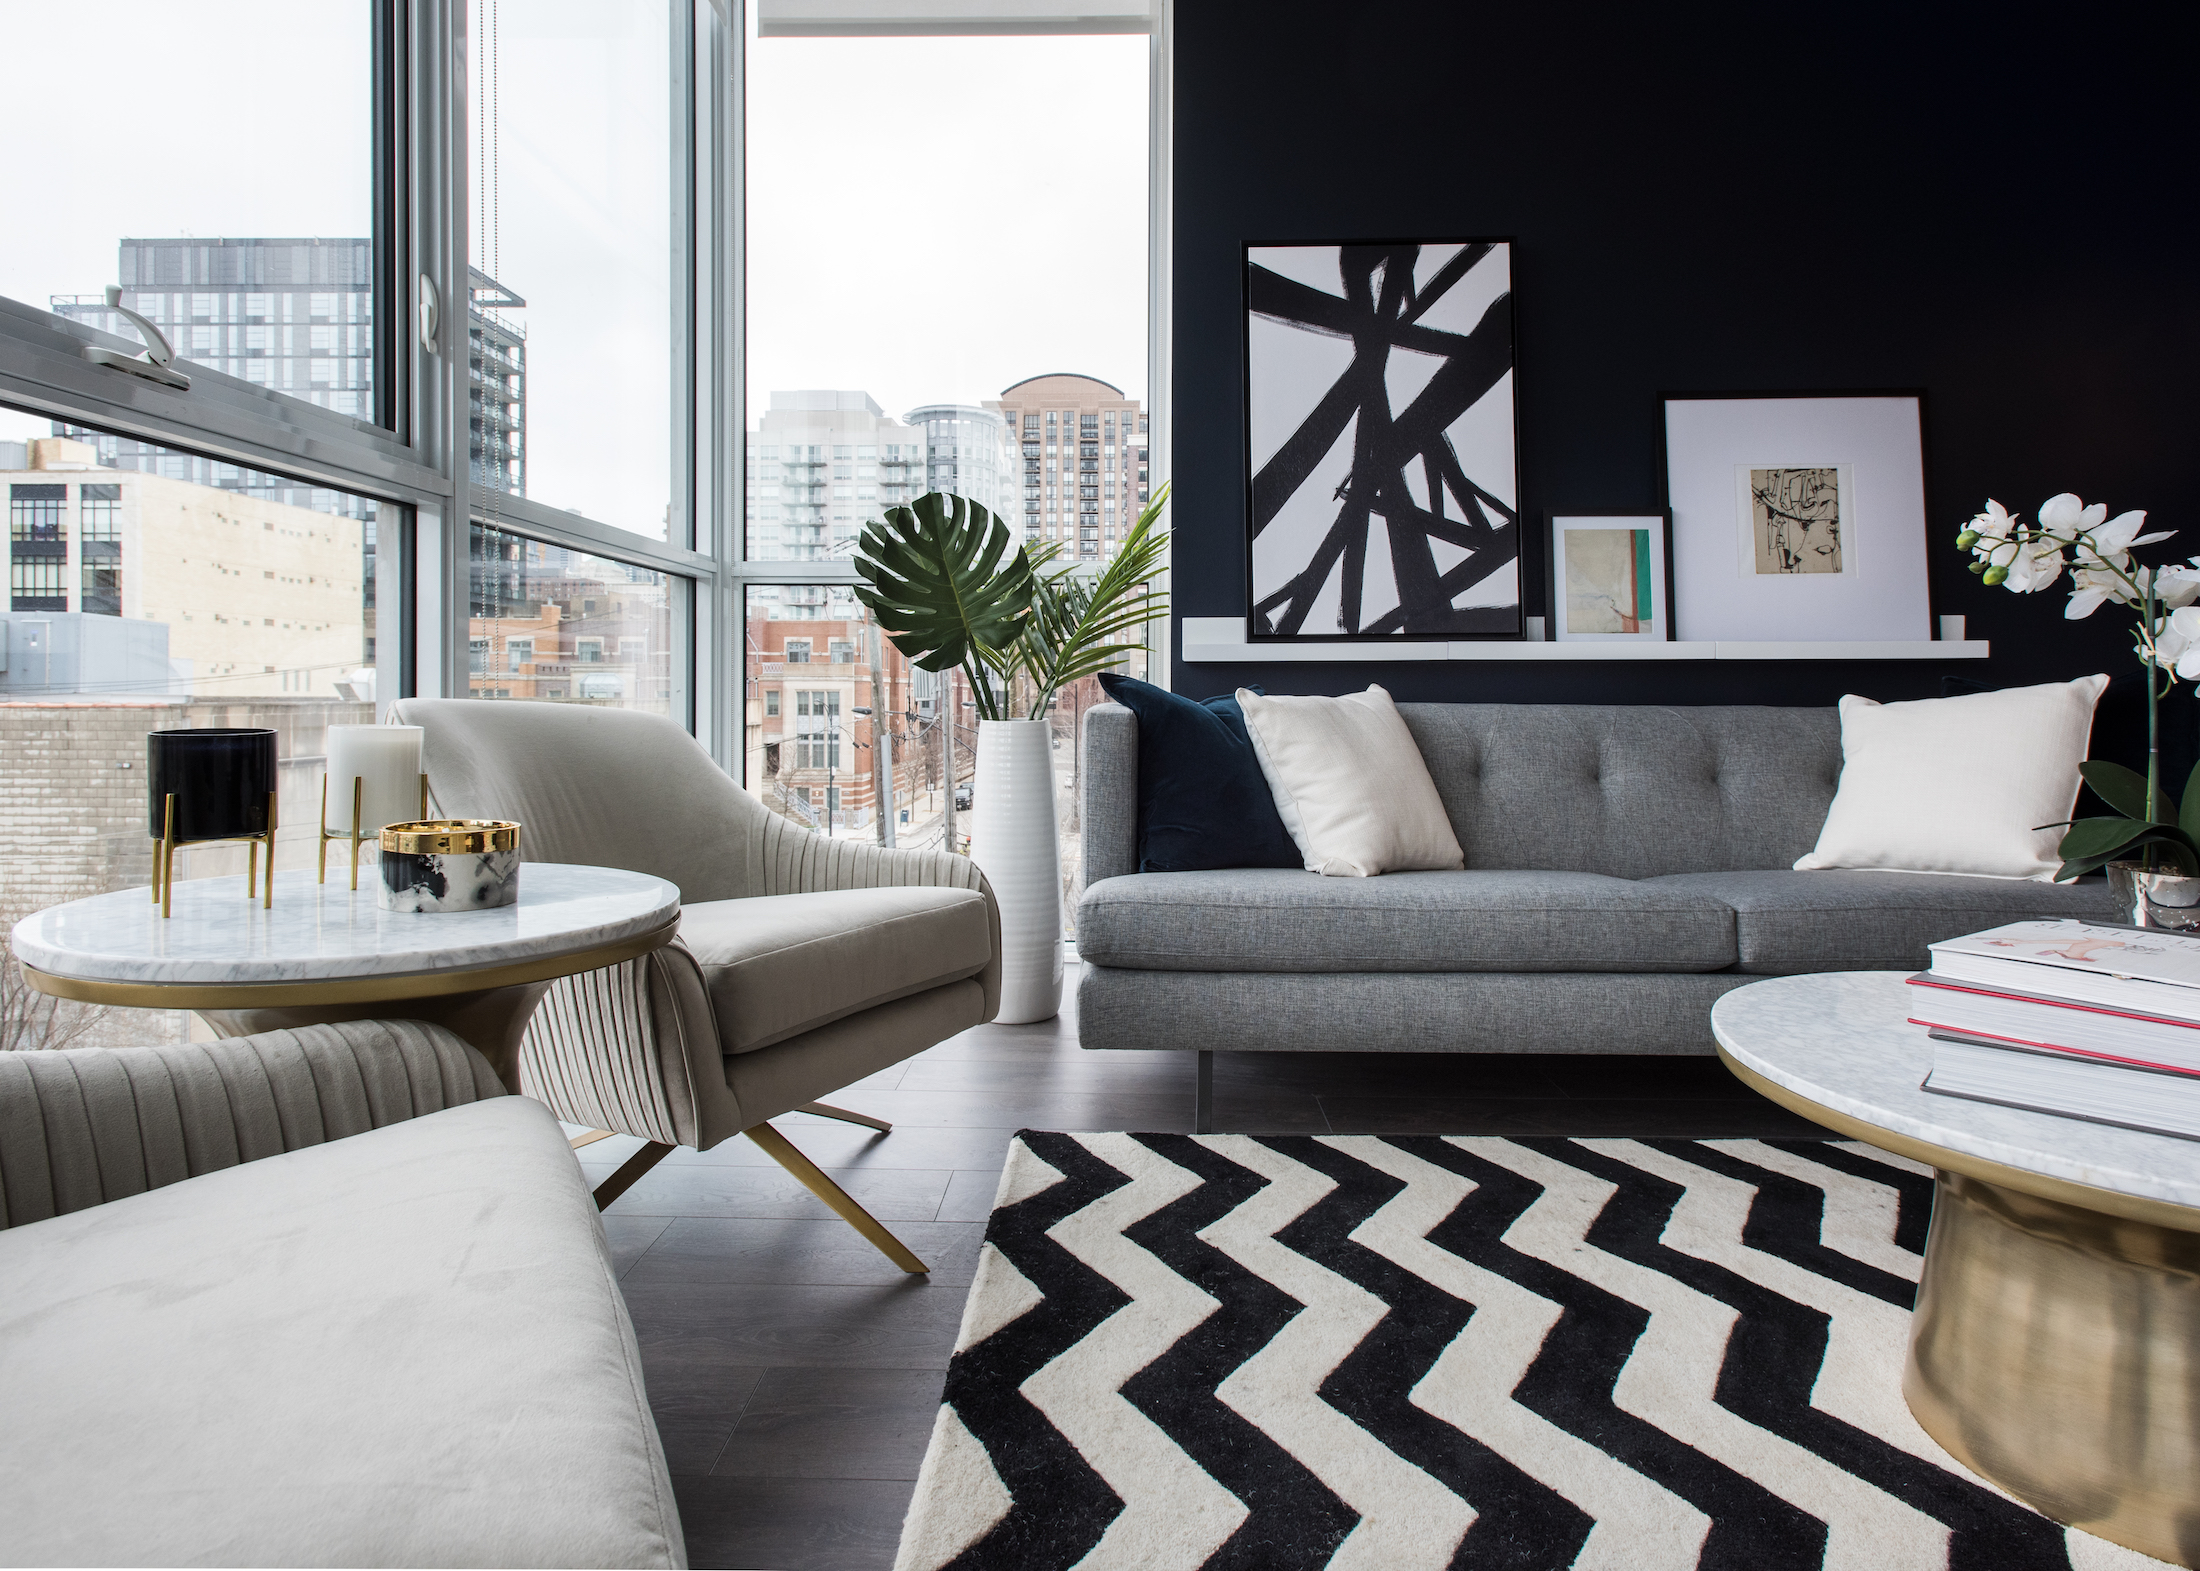 Inside The Hudson River North S Latest Luxury Apartment